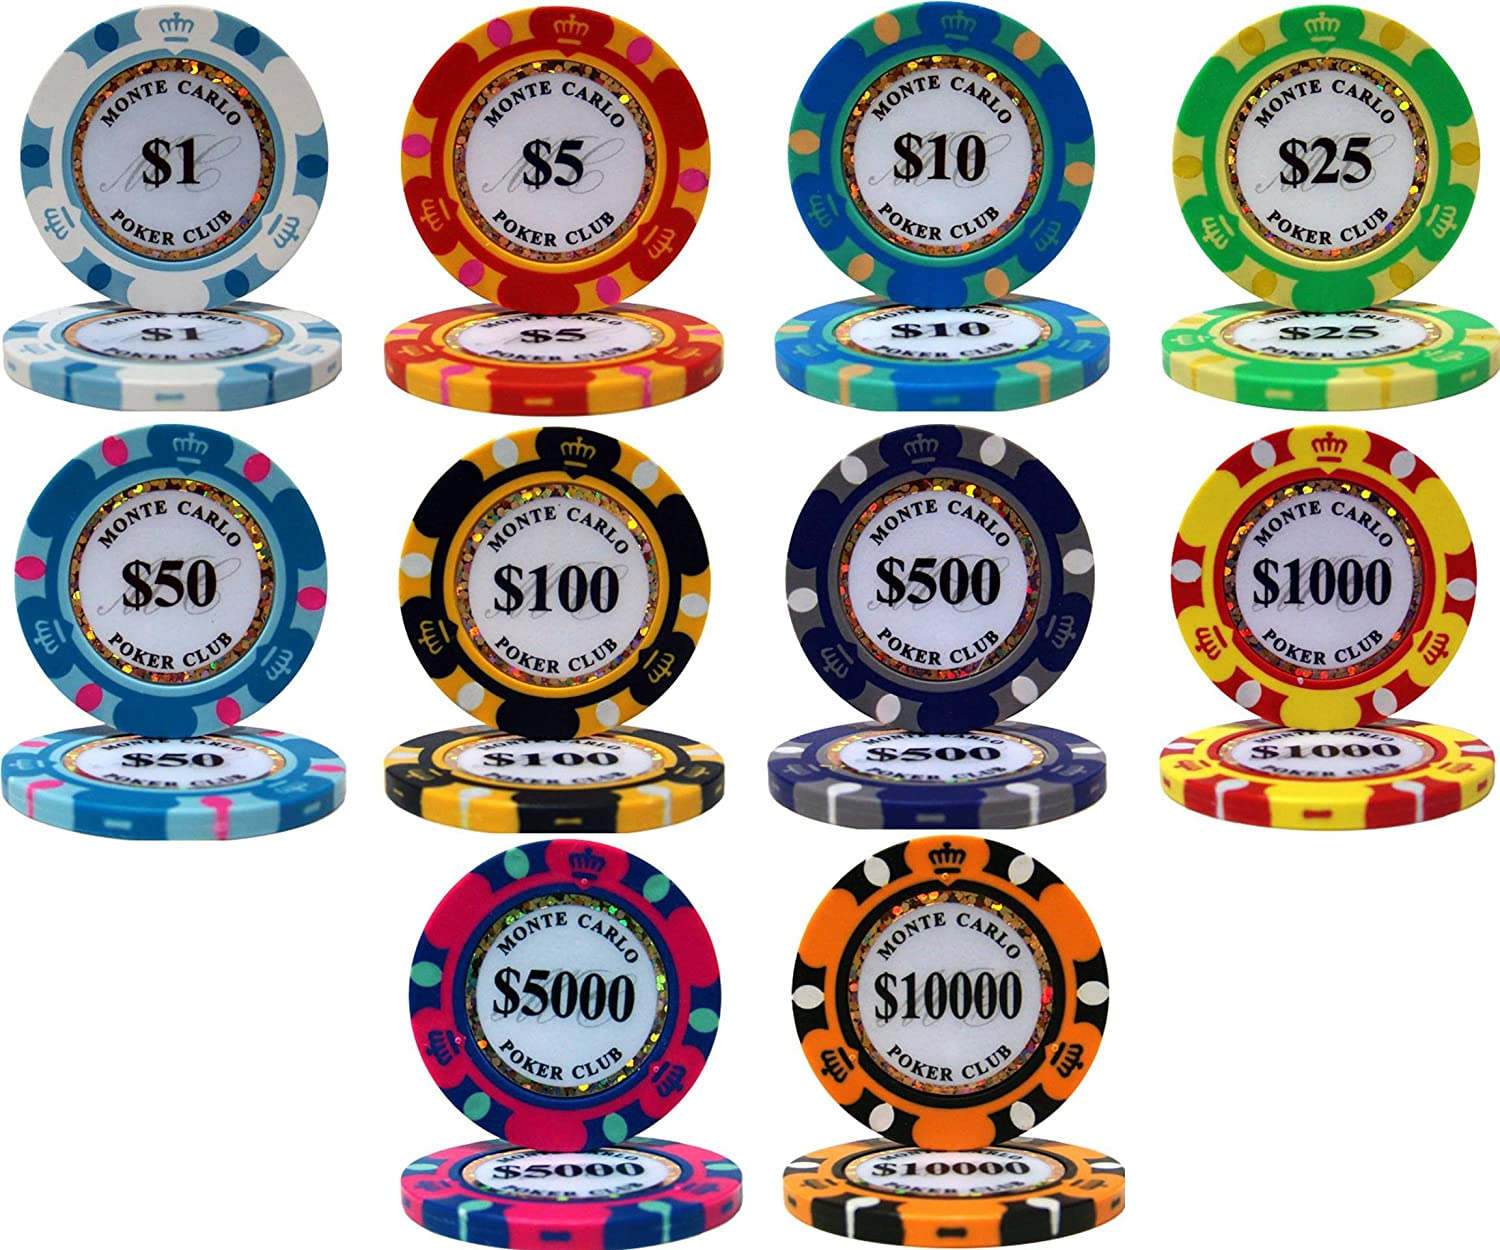 Monte Carlo 14gm Max 59% OFF Clay Poker Chip - Sample Chips Ranking TOP20 10 Set New